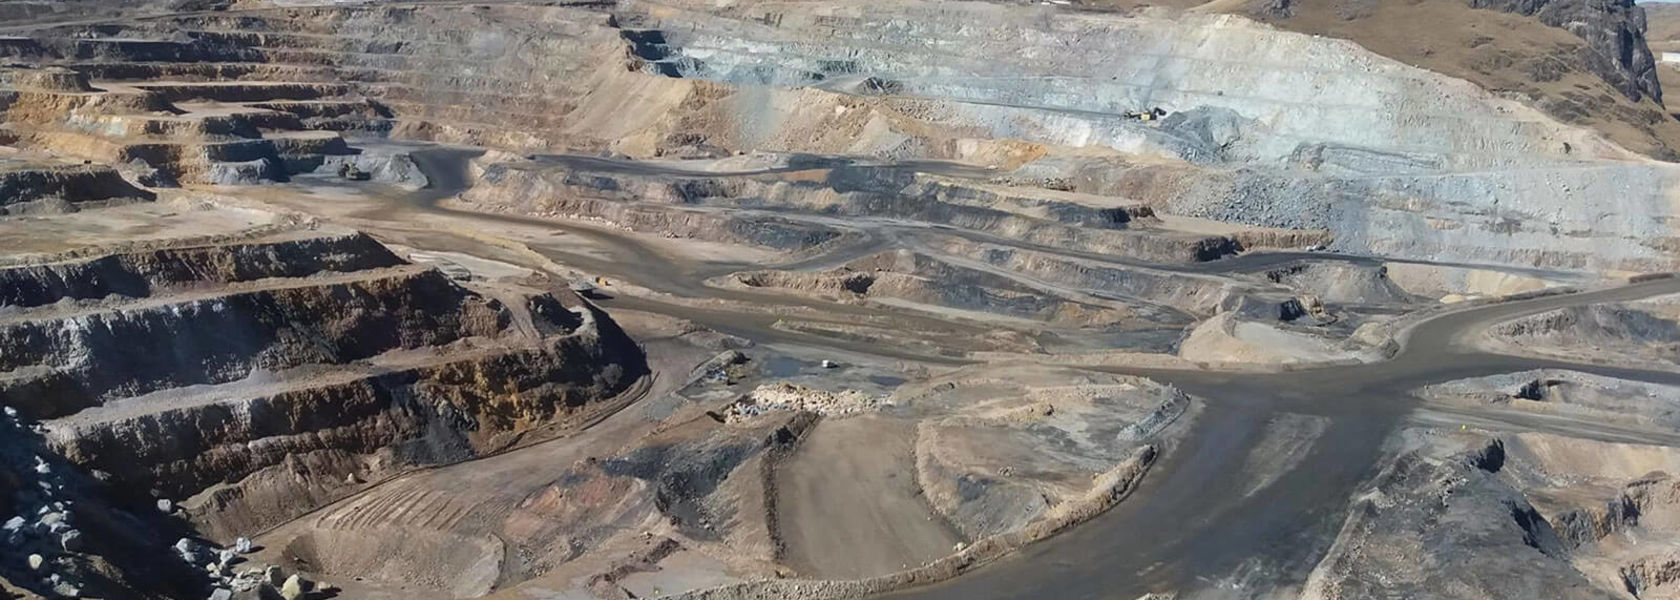 Barrick to close Lagunas Norte